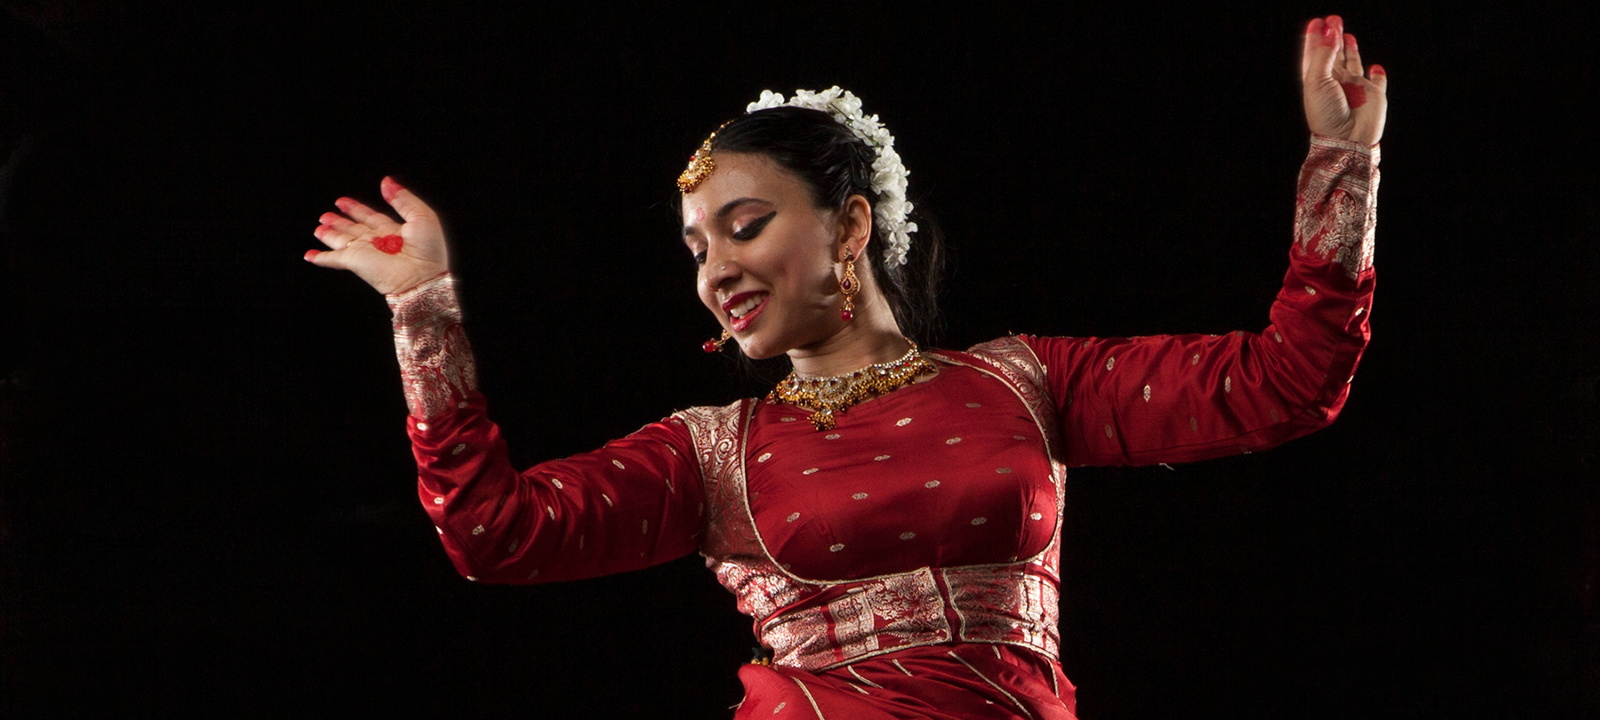 Indian Arts Circle of New Orleans presents: The Power of Indian Dance & Music: Kathak, Sarod on October 19th.